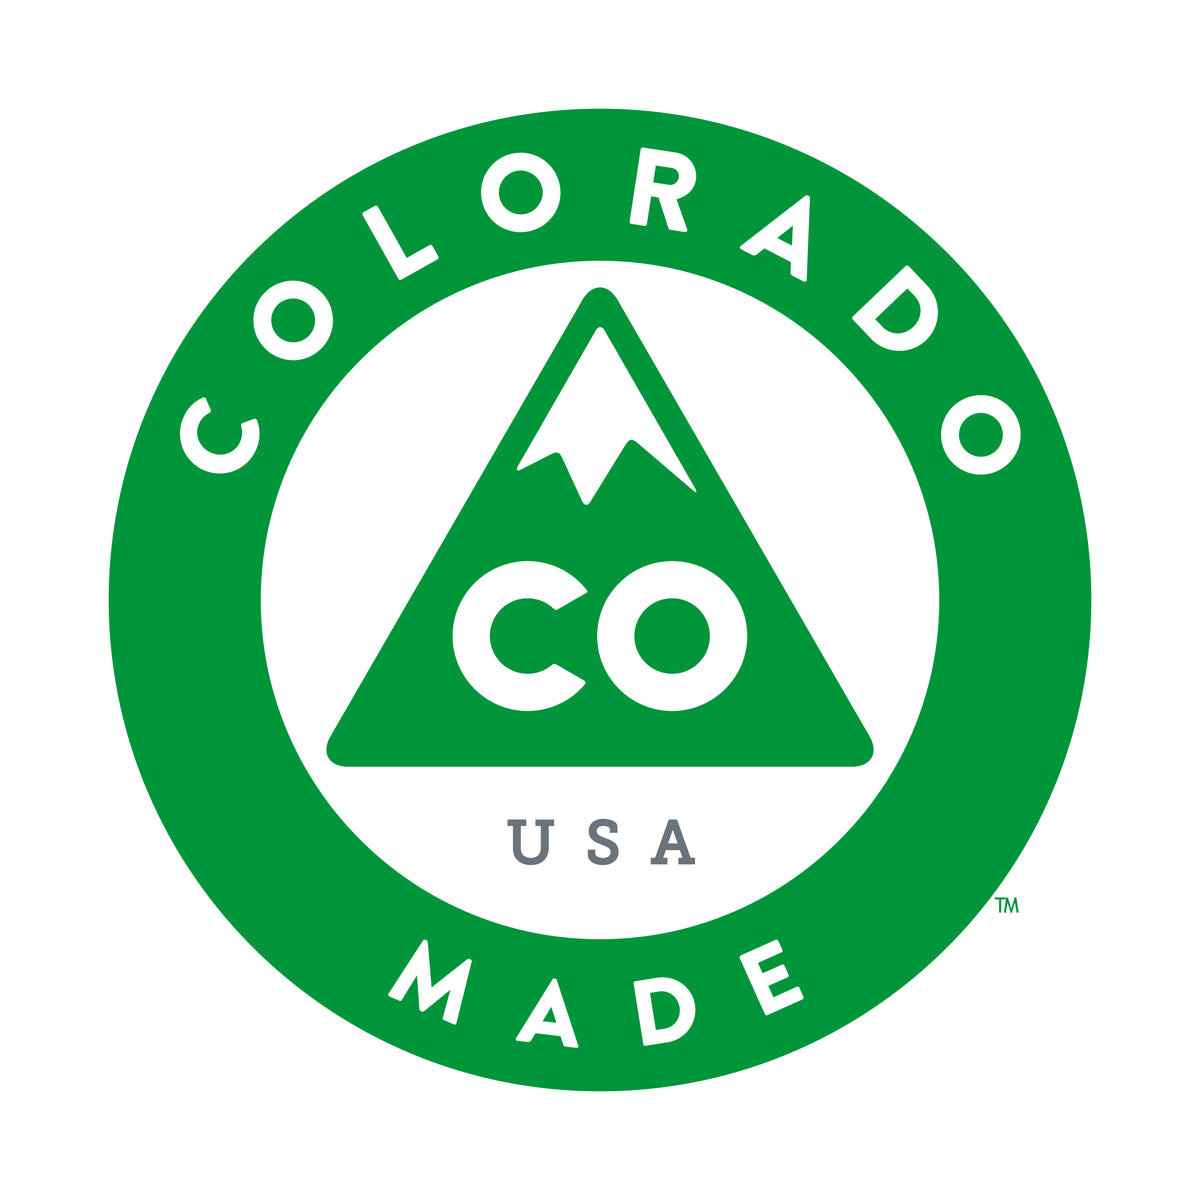 Khala & CO zero waste provisions are handmade, family owned, women owned and made in Colorado